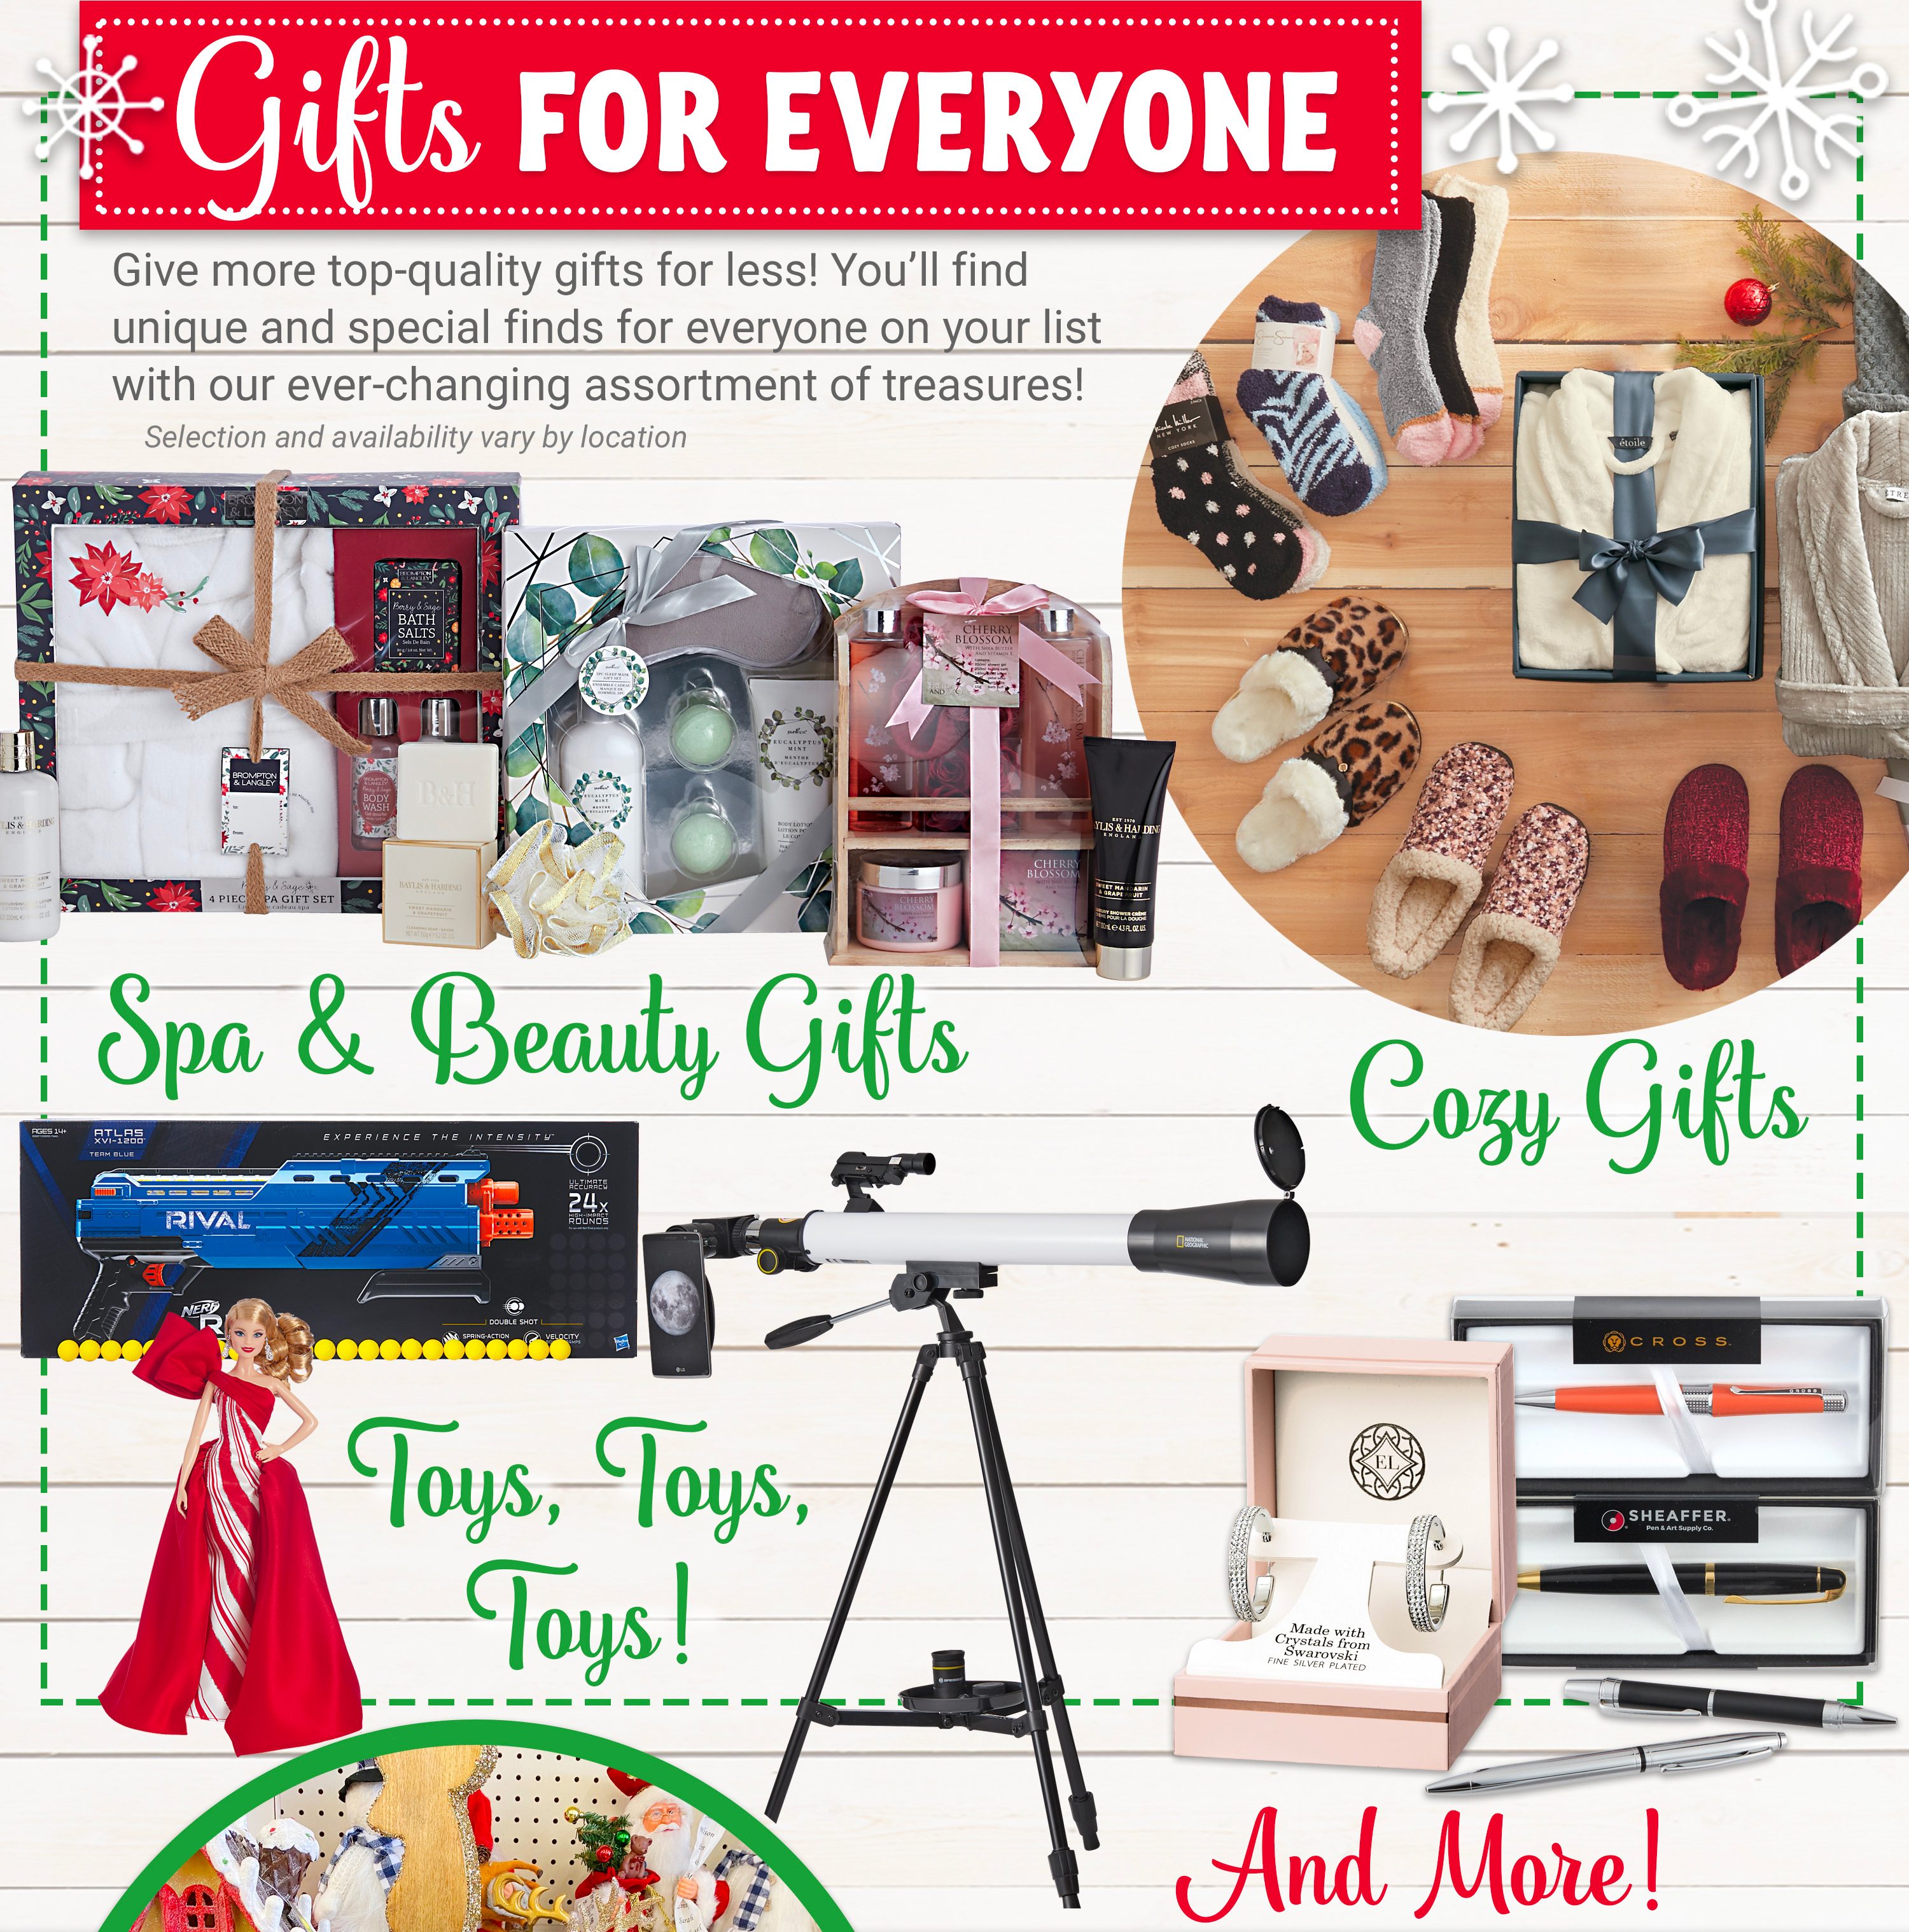 Gifts For Everyone - Spa & Beauty Gifts, Cozy Gifts, Toys, Toys, Toys and more!